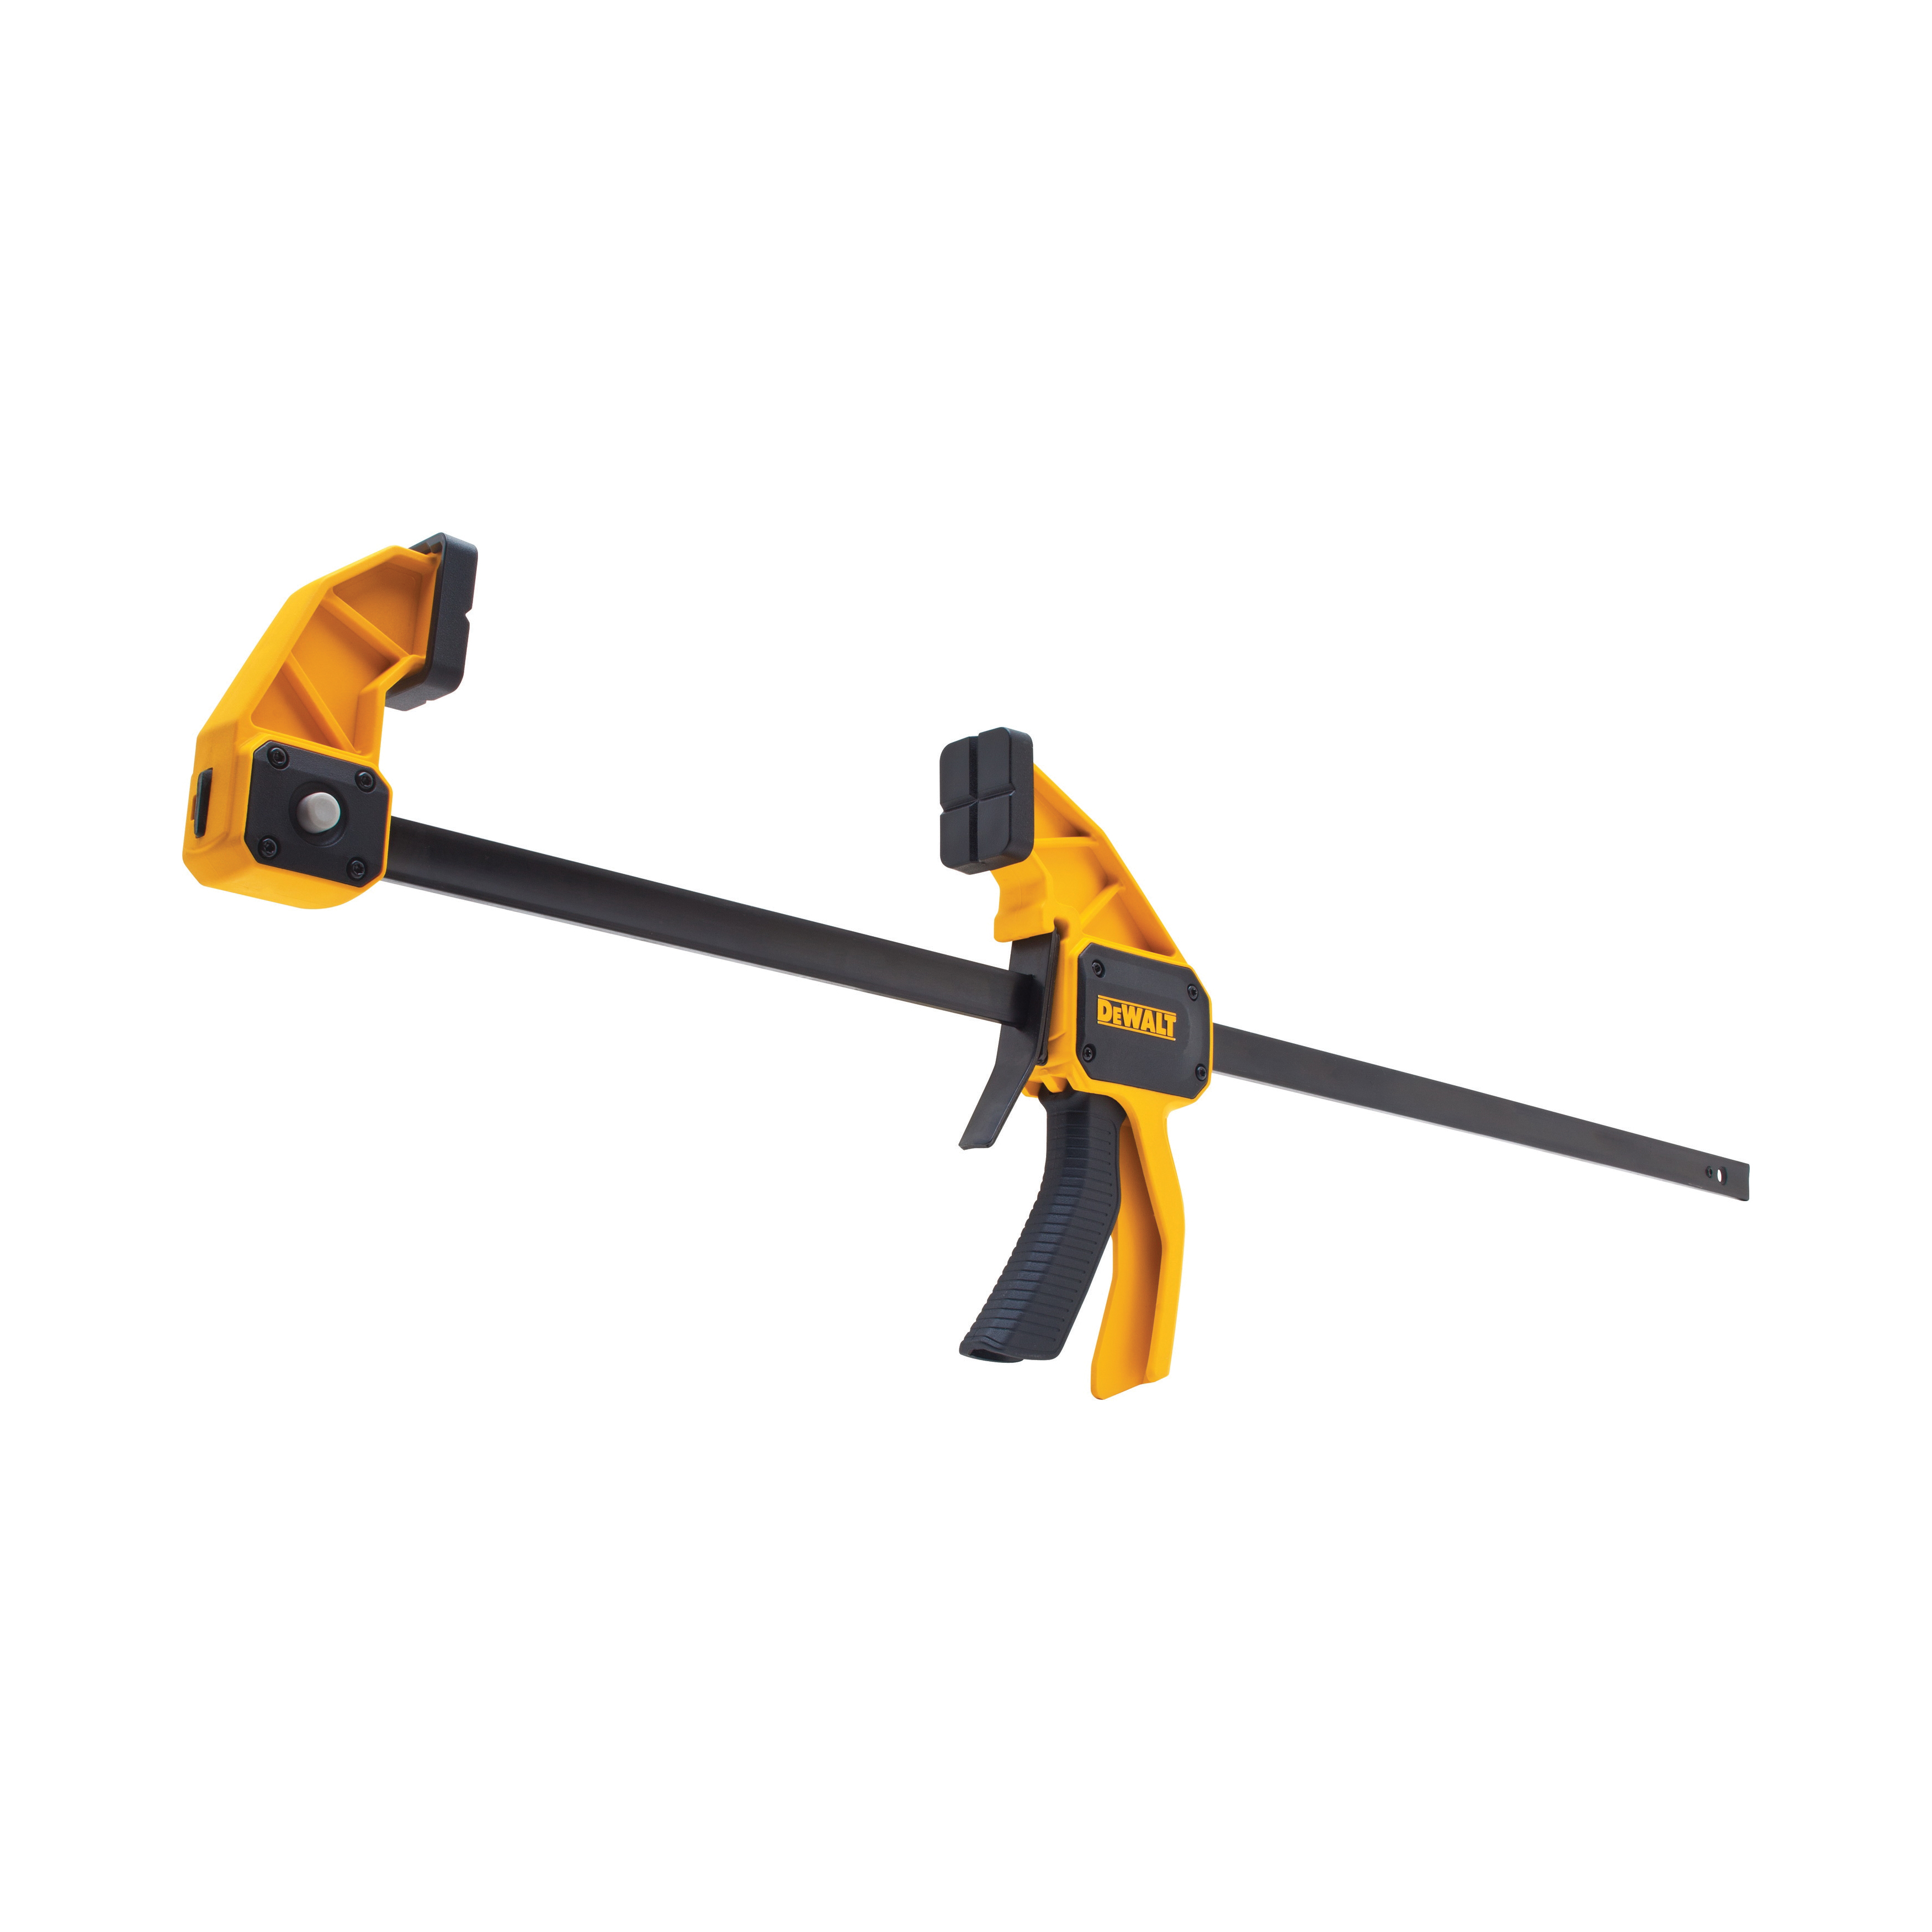 DeWALT® DWHT83194 1-Handed Large Trigger Clamp, 24 in Clamping, 3-1/4 in D Throat, Steel Bar